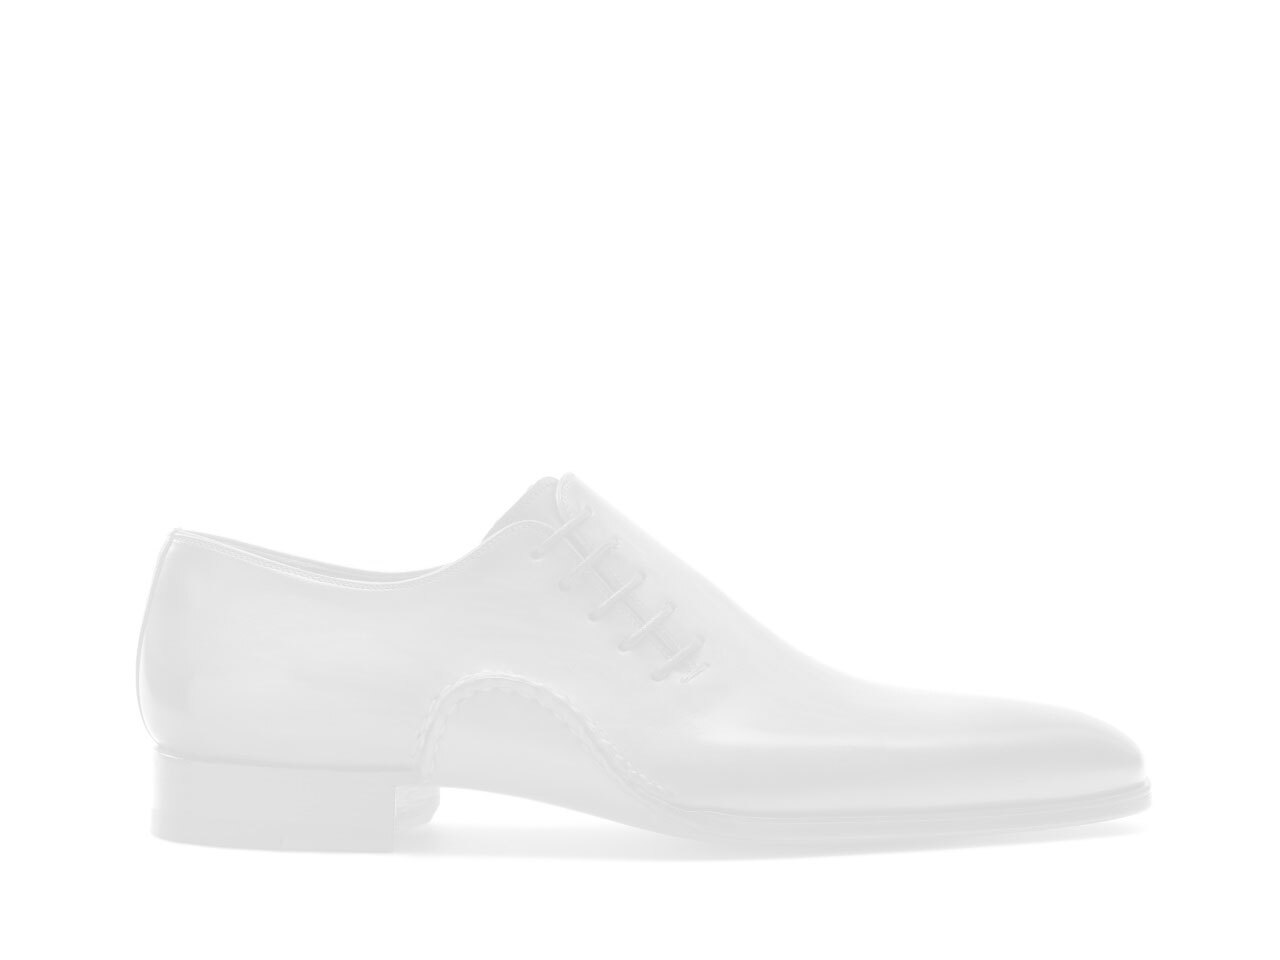 Side view of the Magnanni Nerja Musgo Men's Sneakers